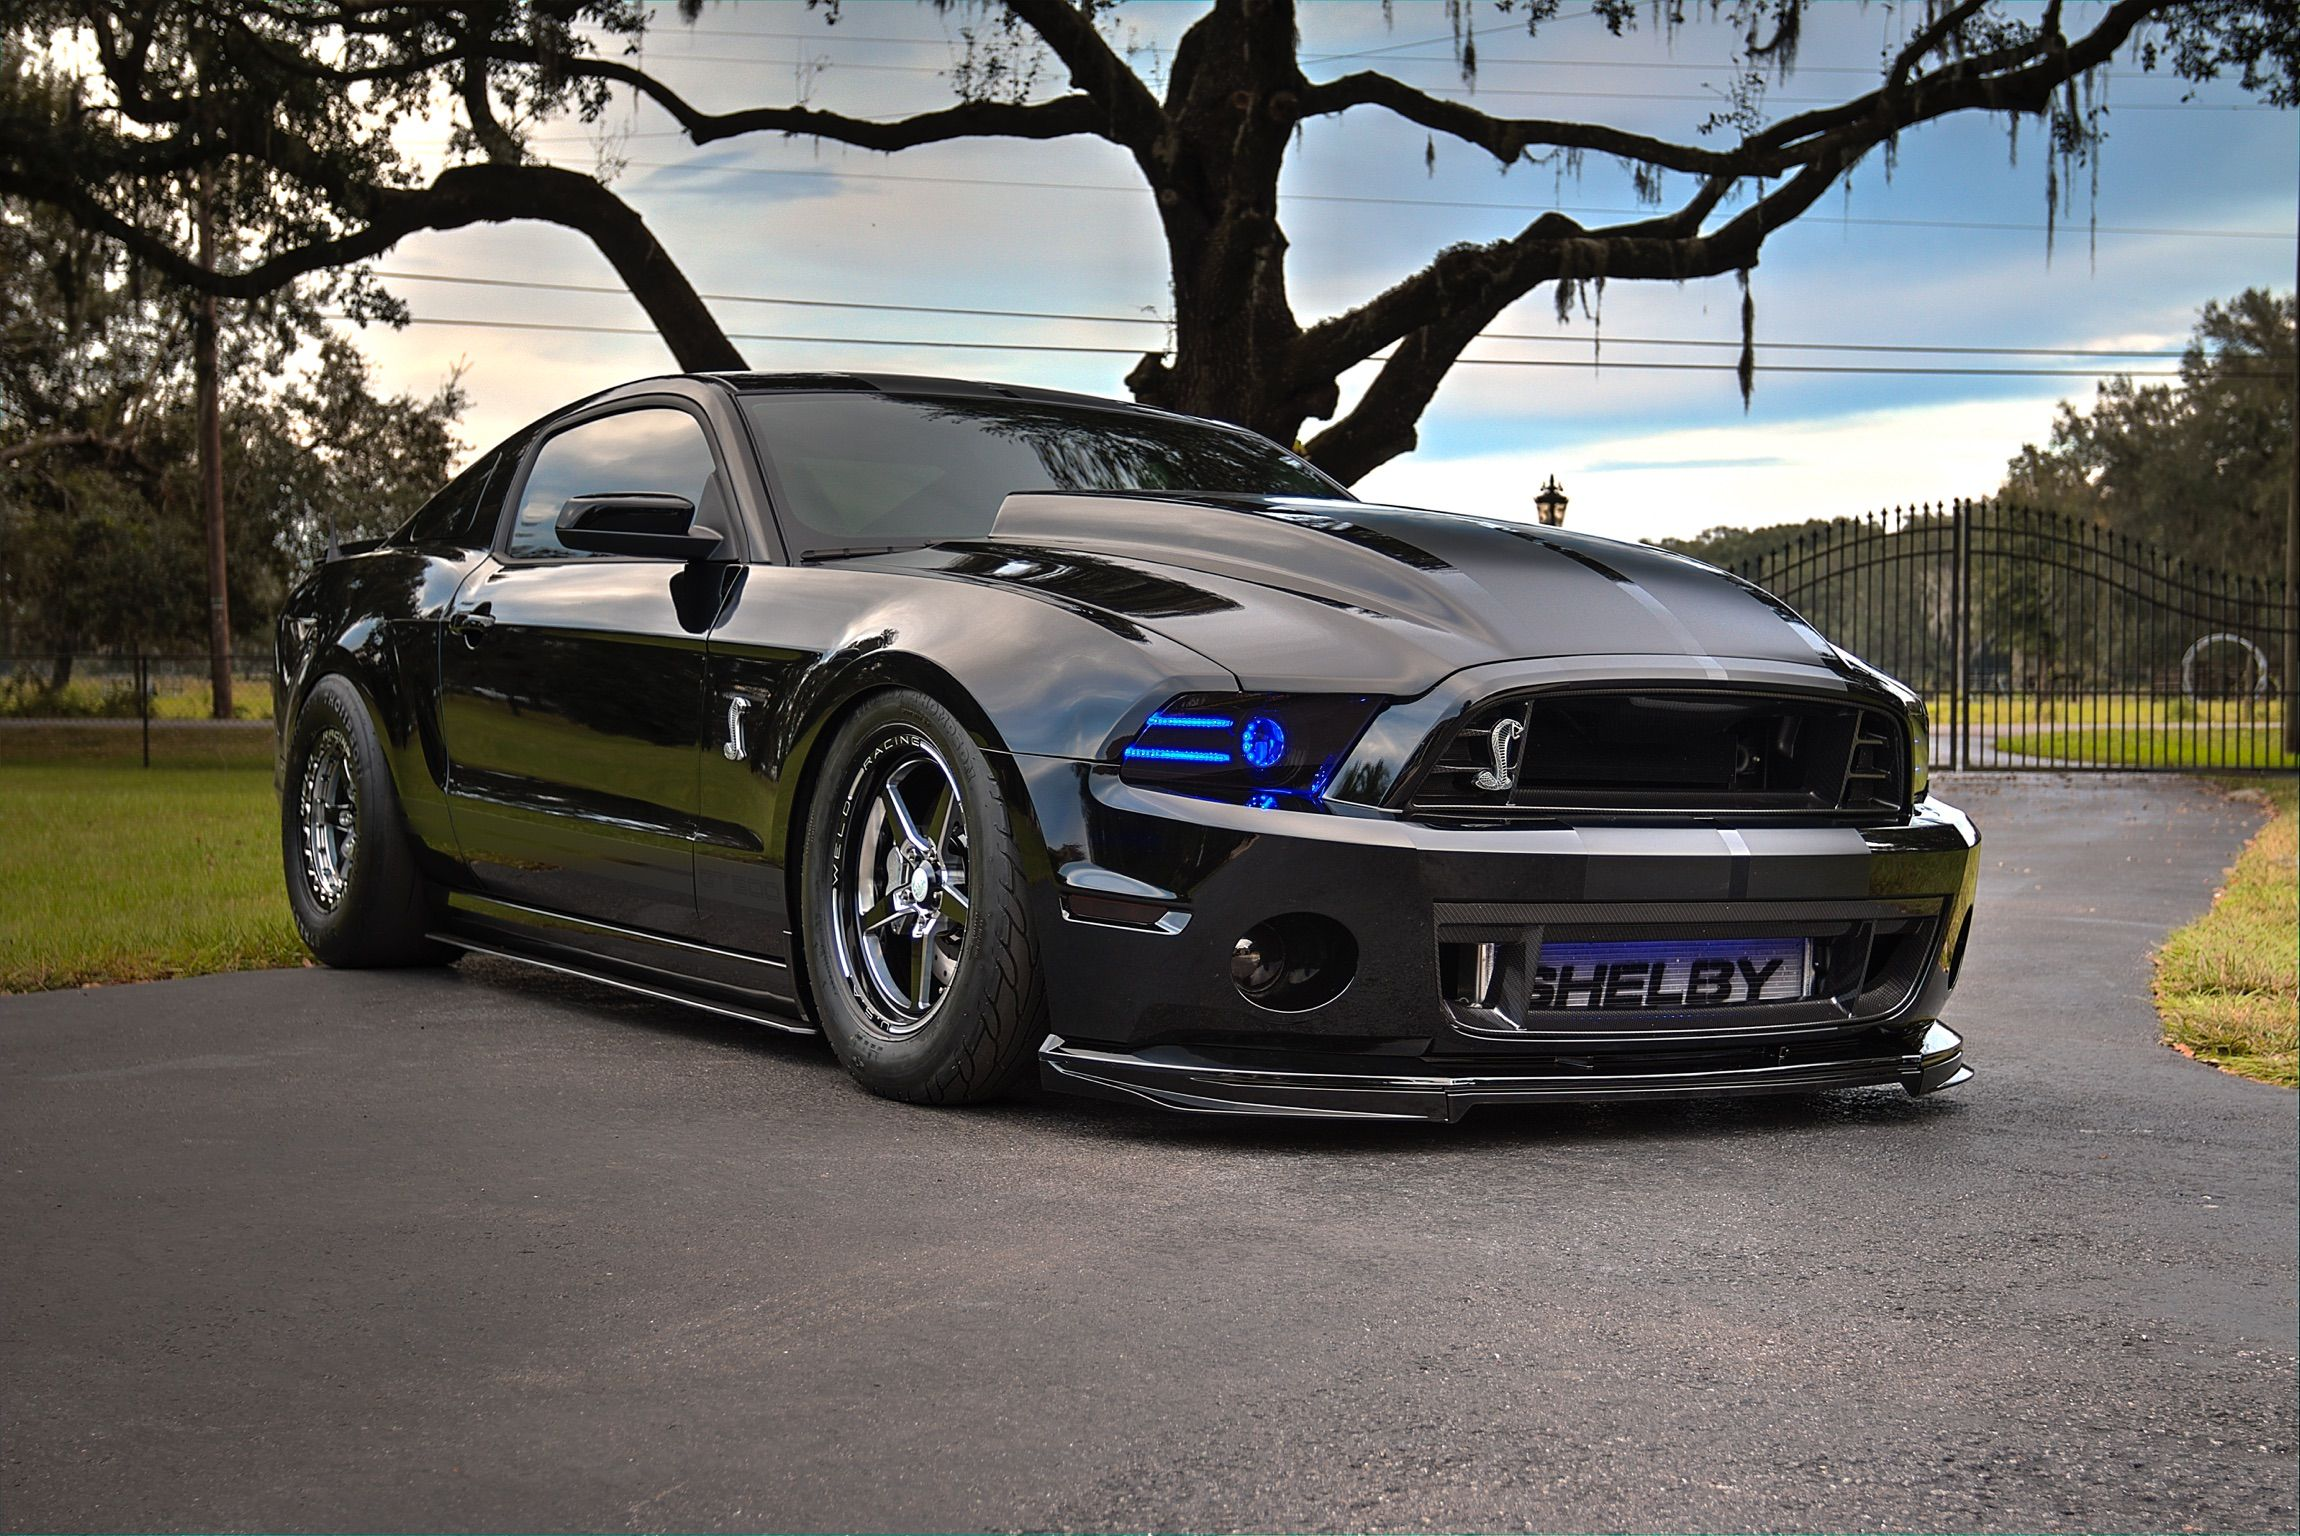 Shelby Gt500 1204 Horsepower At The Tire Follow On Instagram